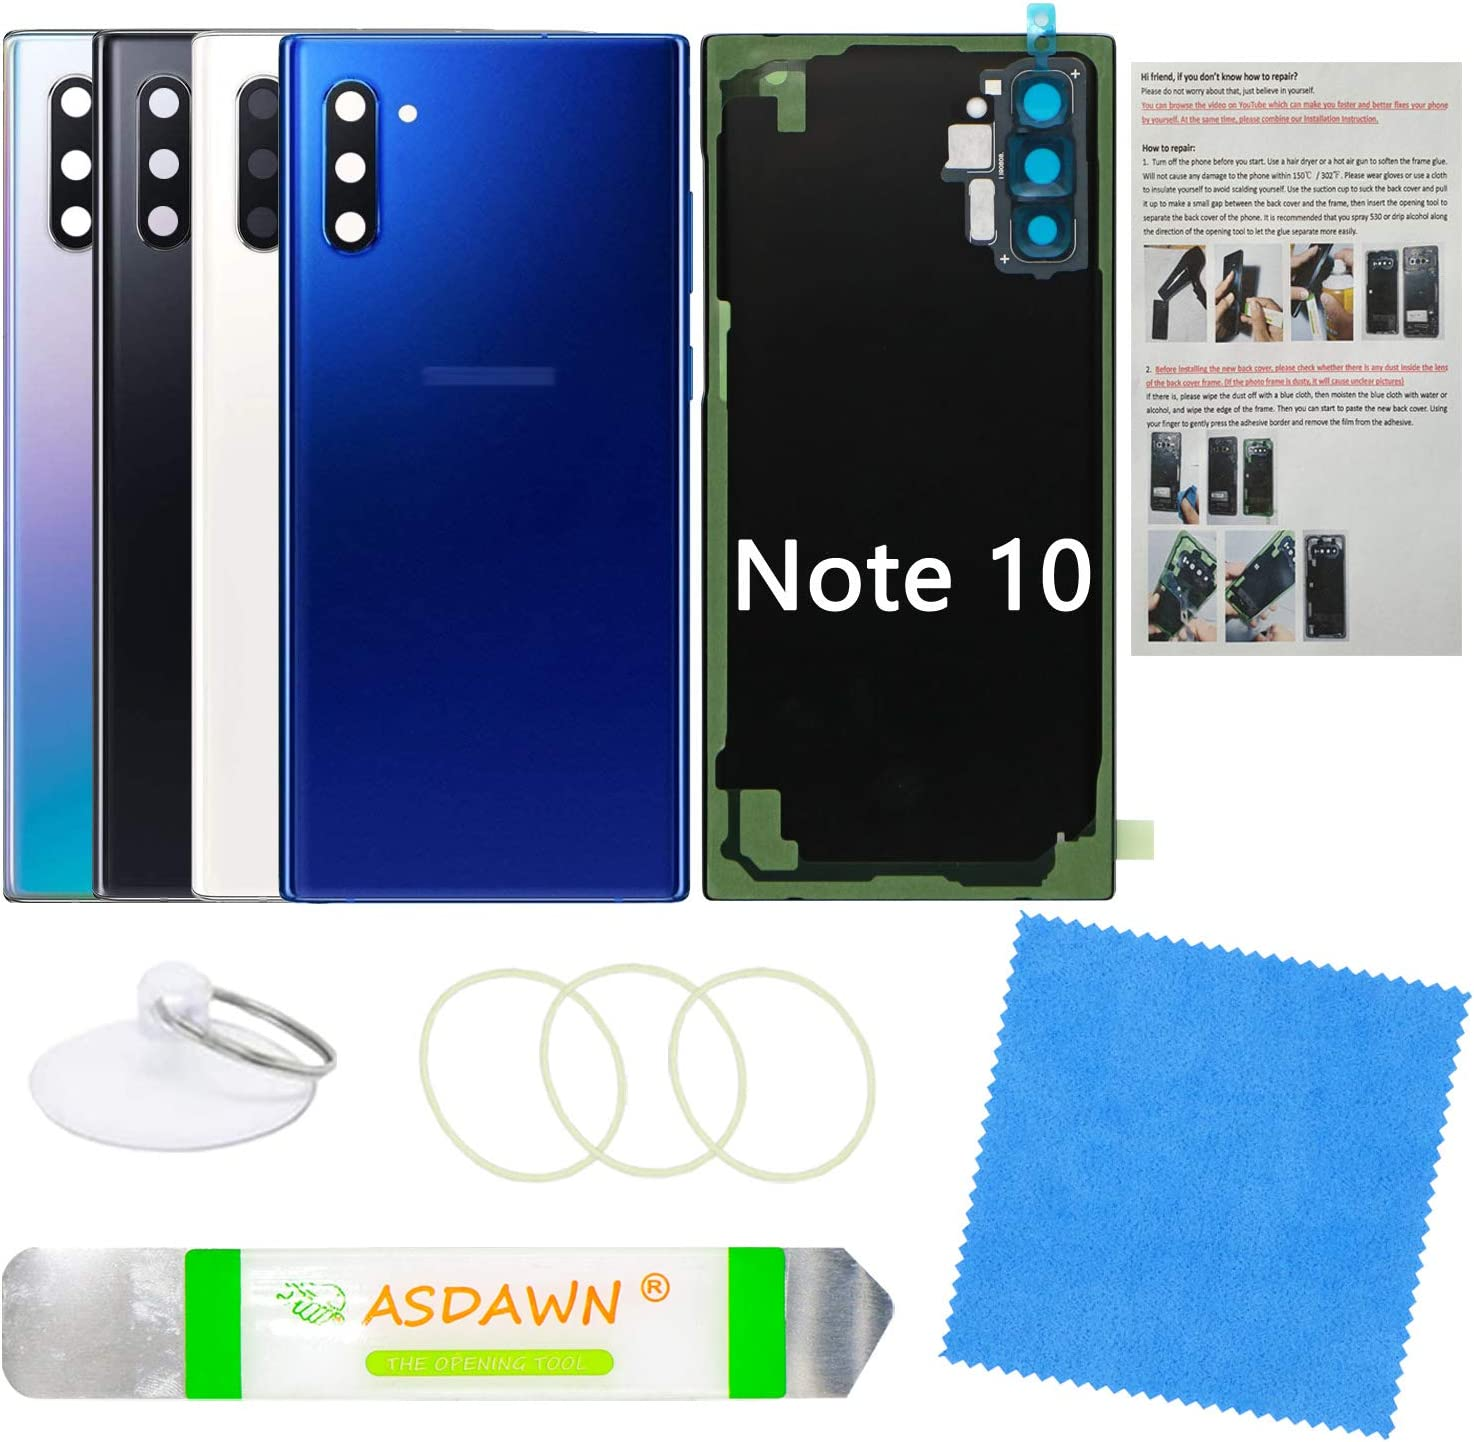 Galaxy Note 10 Replacement Back Glass Panel Case with Installation Manual + Pre-Installed Camera Lens + All The Adhesive + Repair Tool Kit for Samsung Galaxy Note 10 SM-N970 All Carriers (Aura Blue)